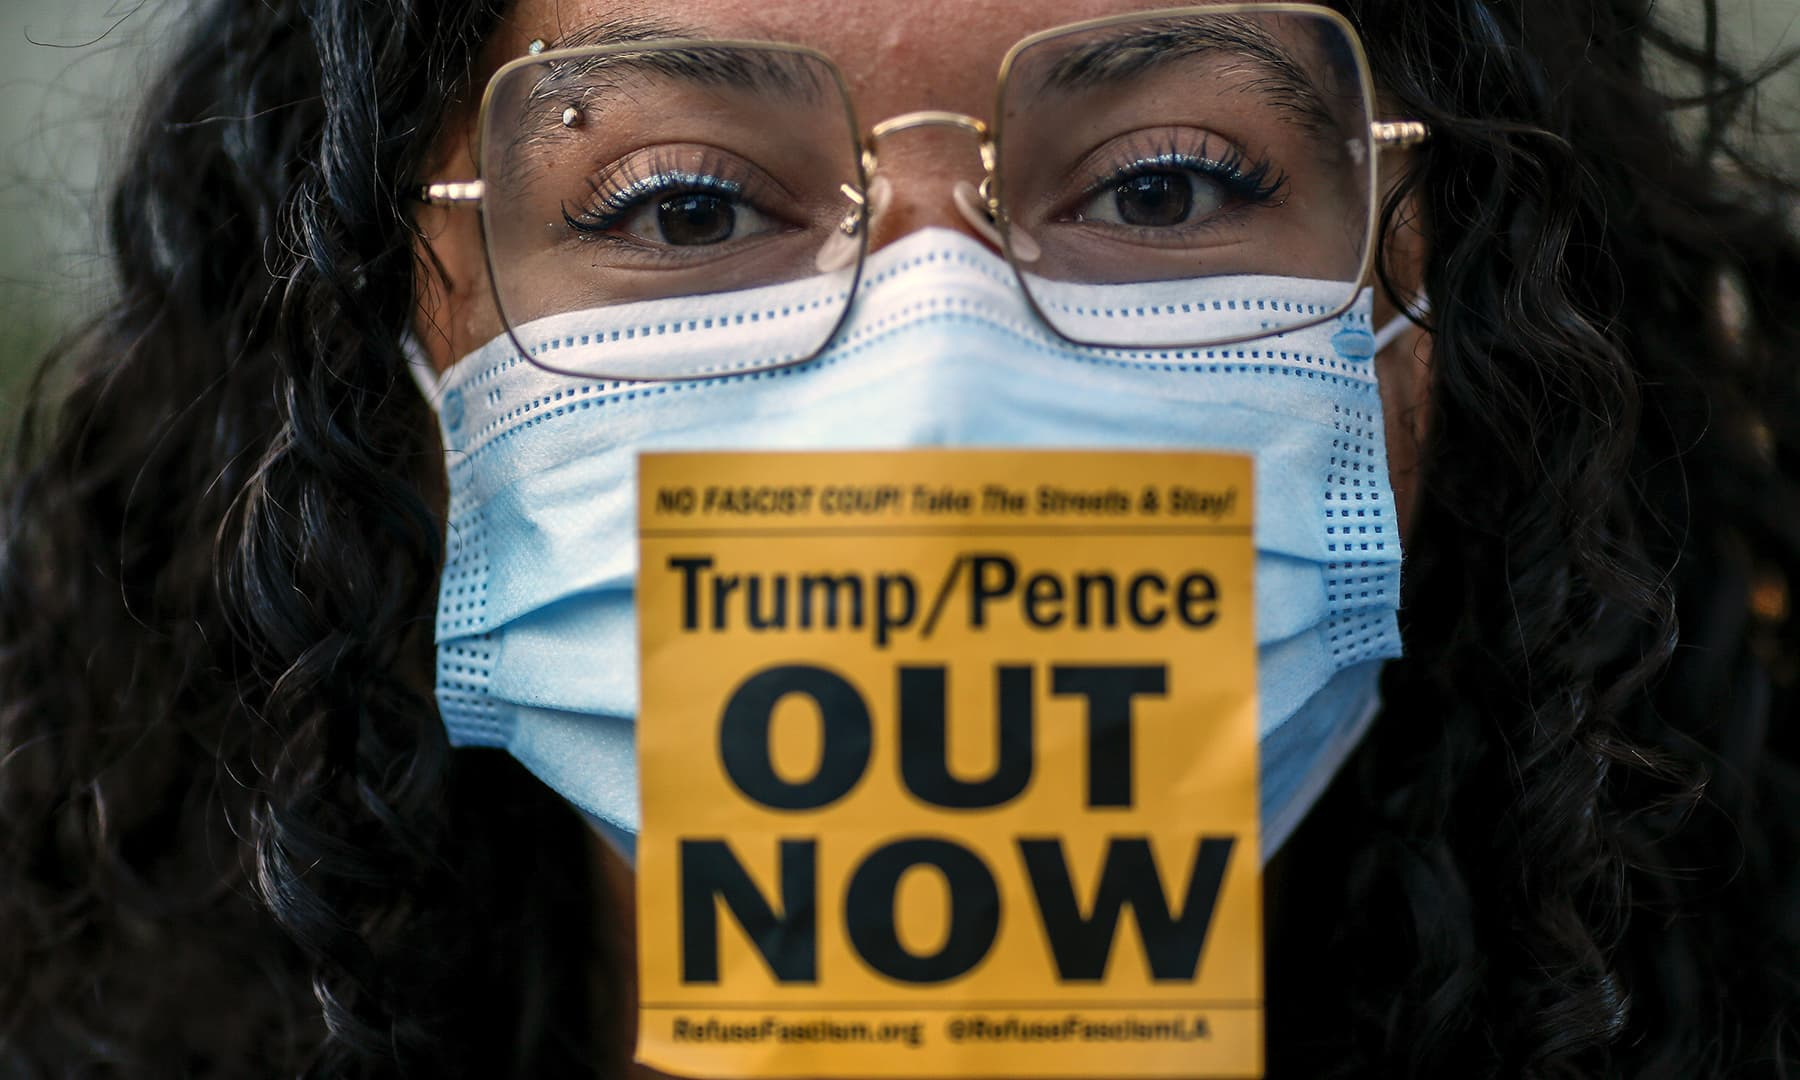 A woman wearing a face mask with a sticker takes part in a protest in Los Angeles on November 4. — AP